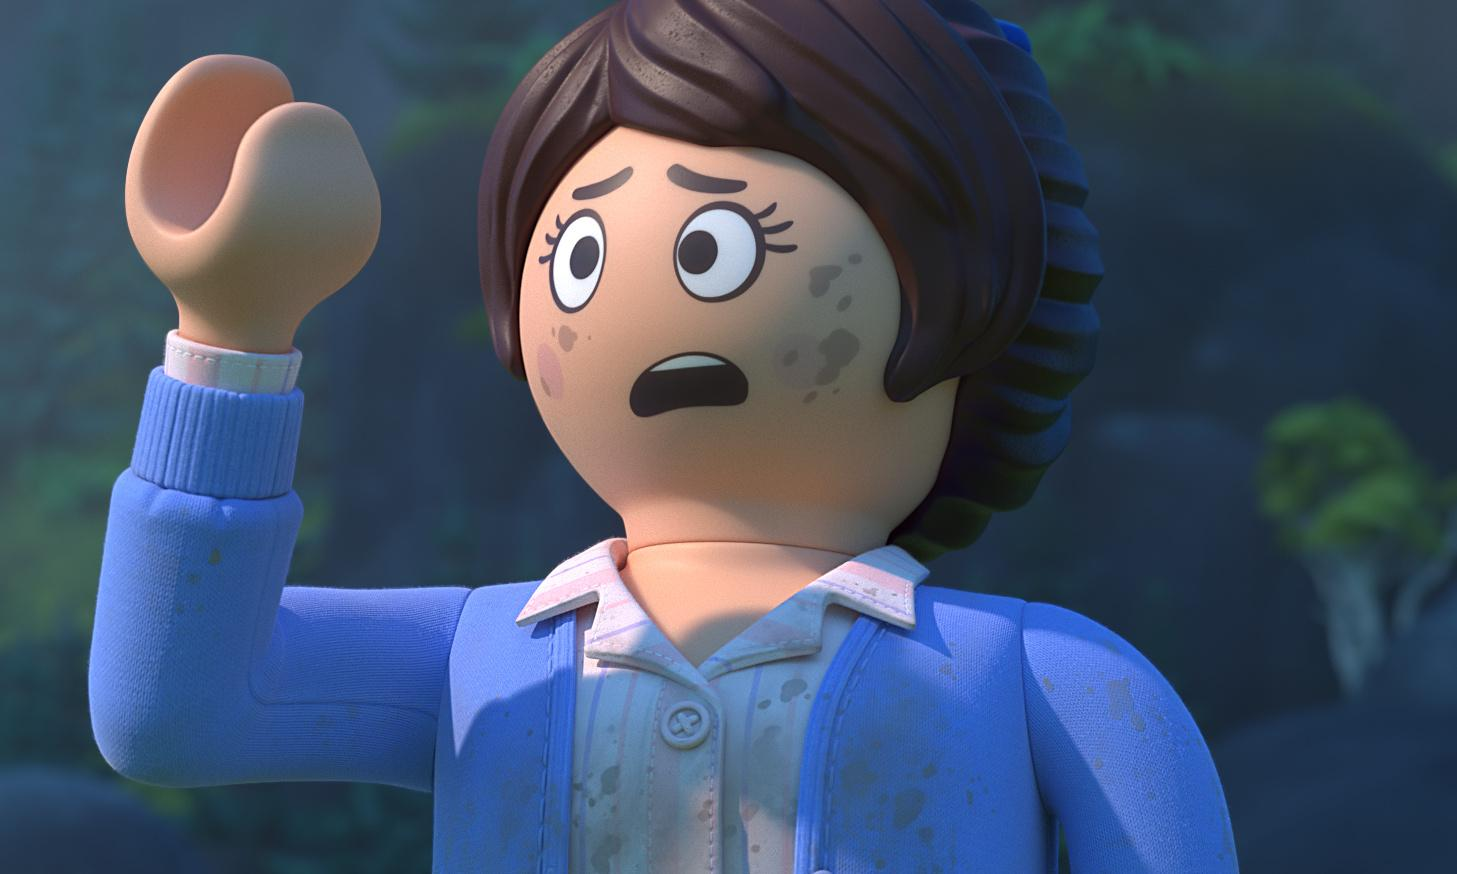 Playmobil: The Movie review – borderline dopey kids' adventure